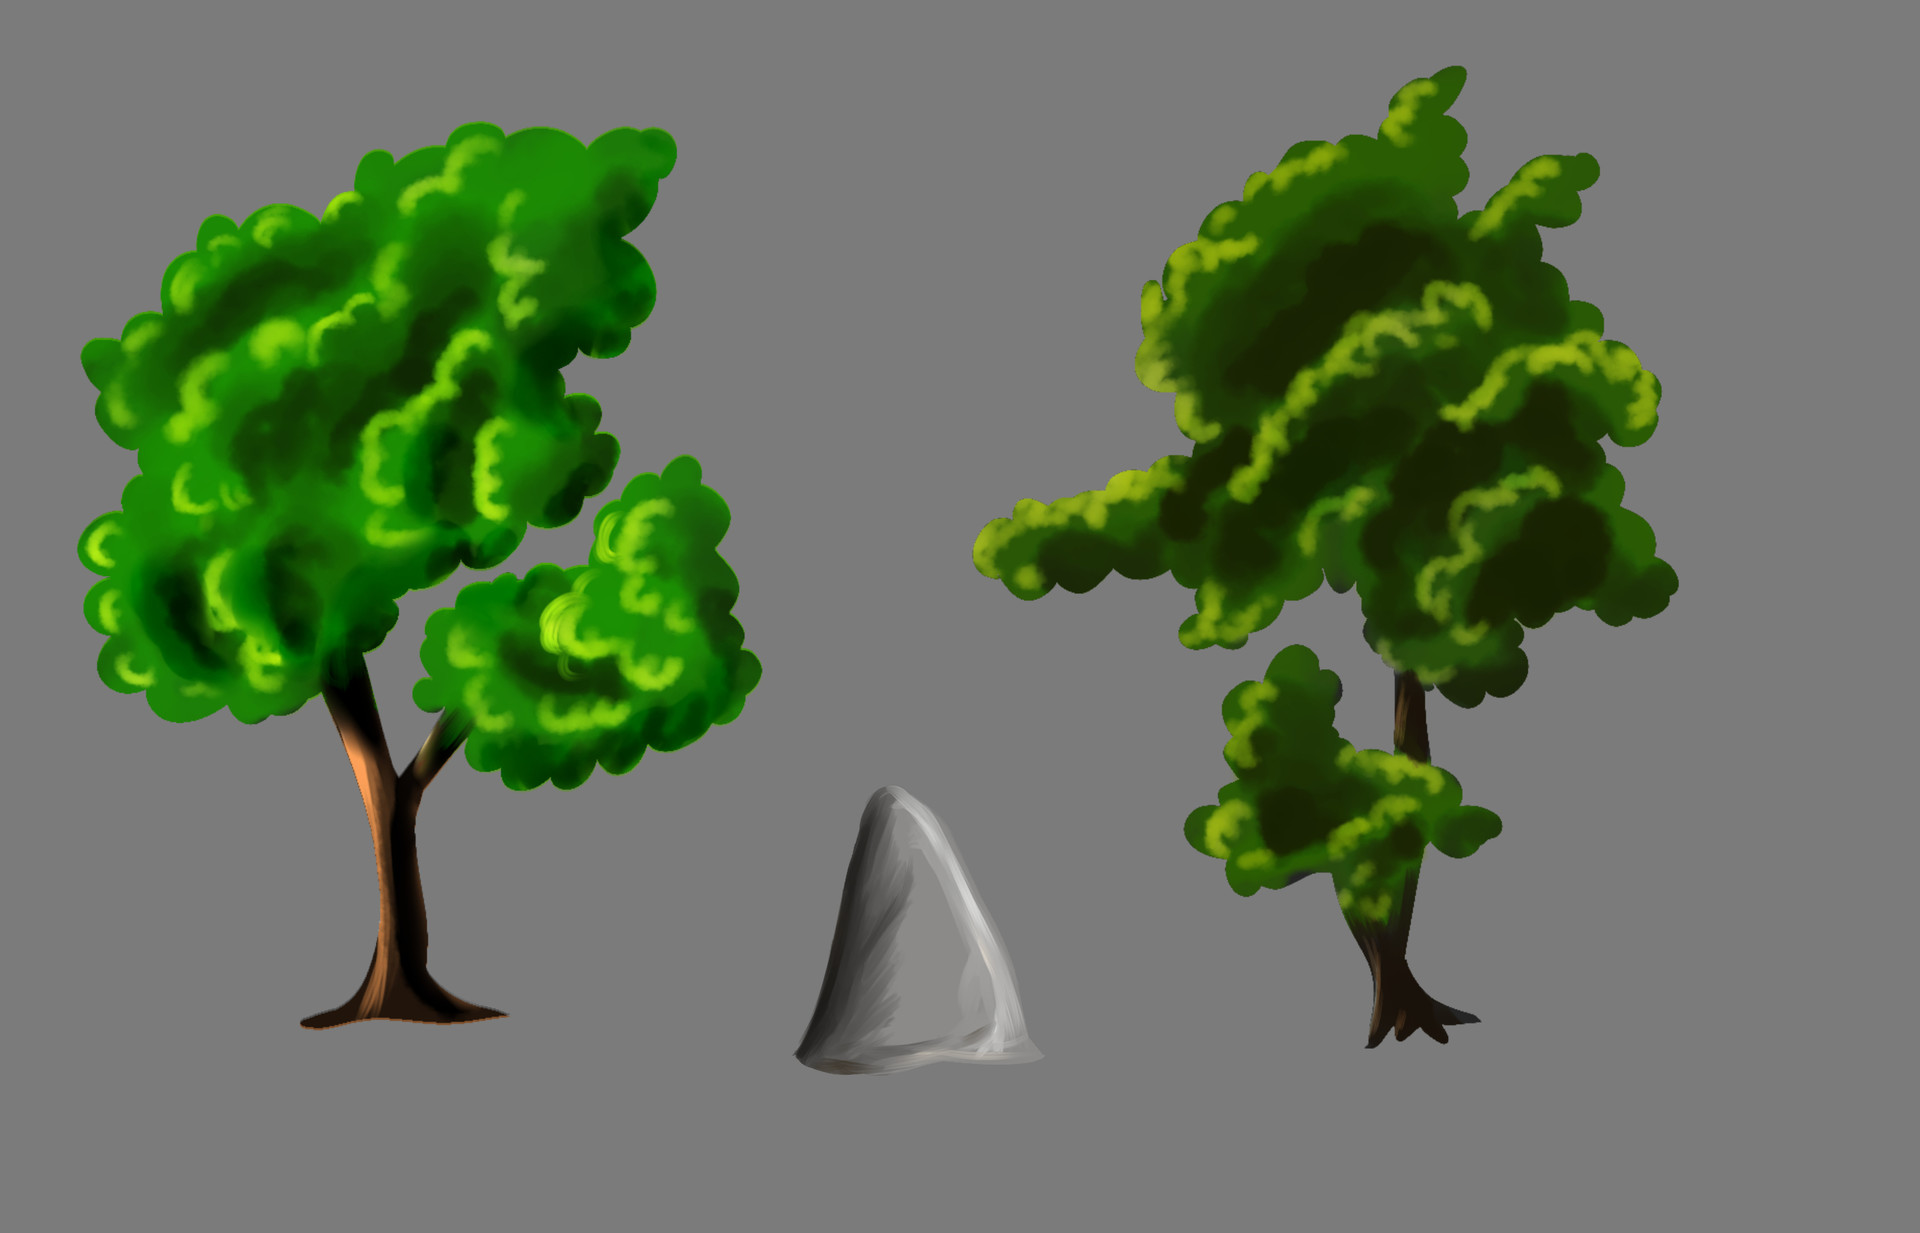 Background assets - Trees and stone